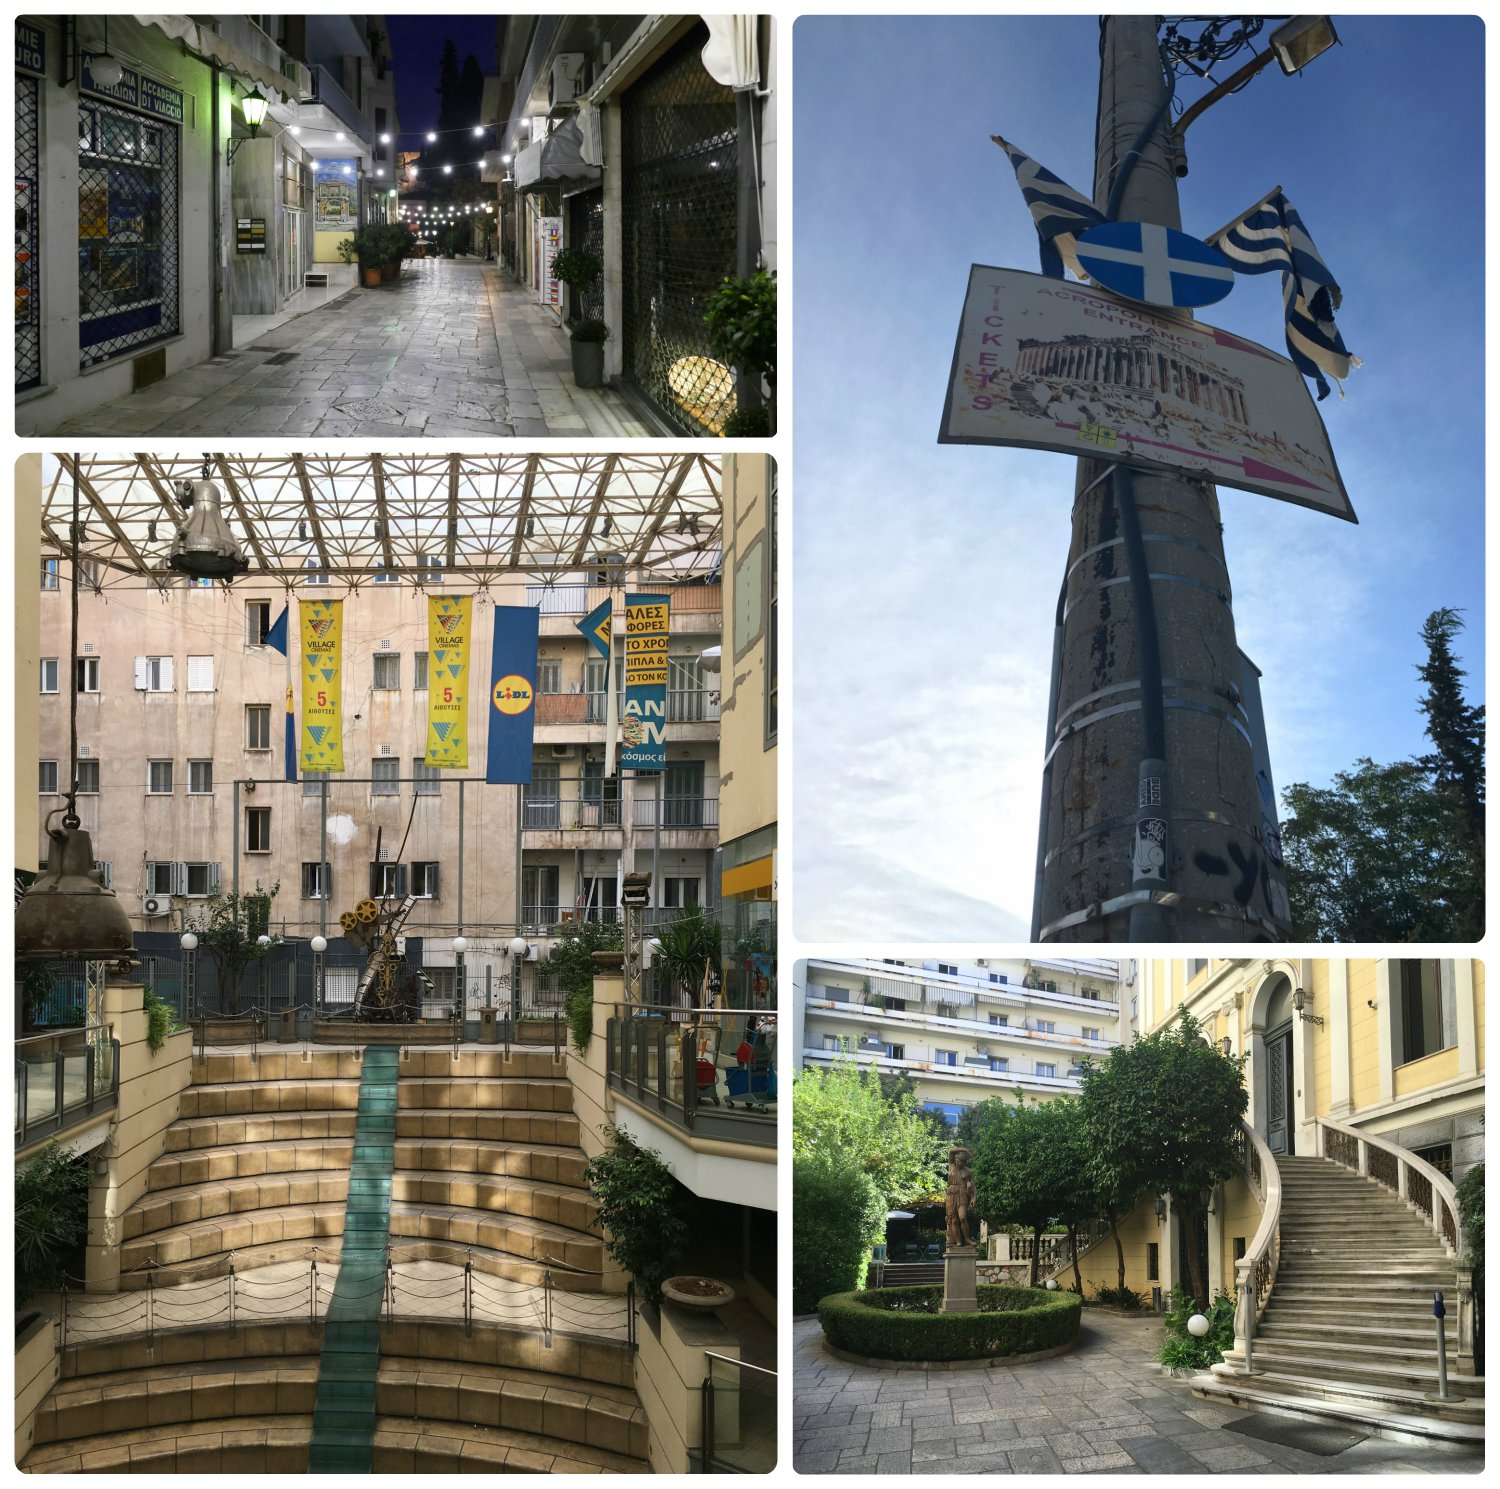 Athens is a beautiful and unique city that's best appreciated by walking around to see what can be discovered!